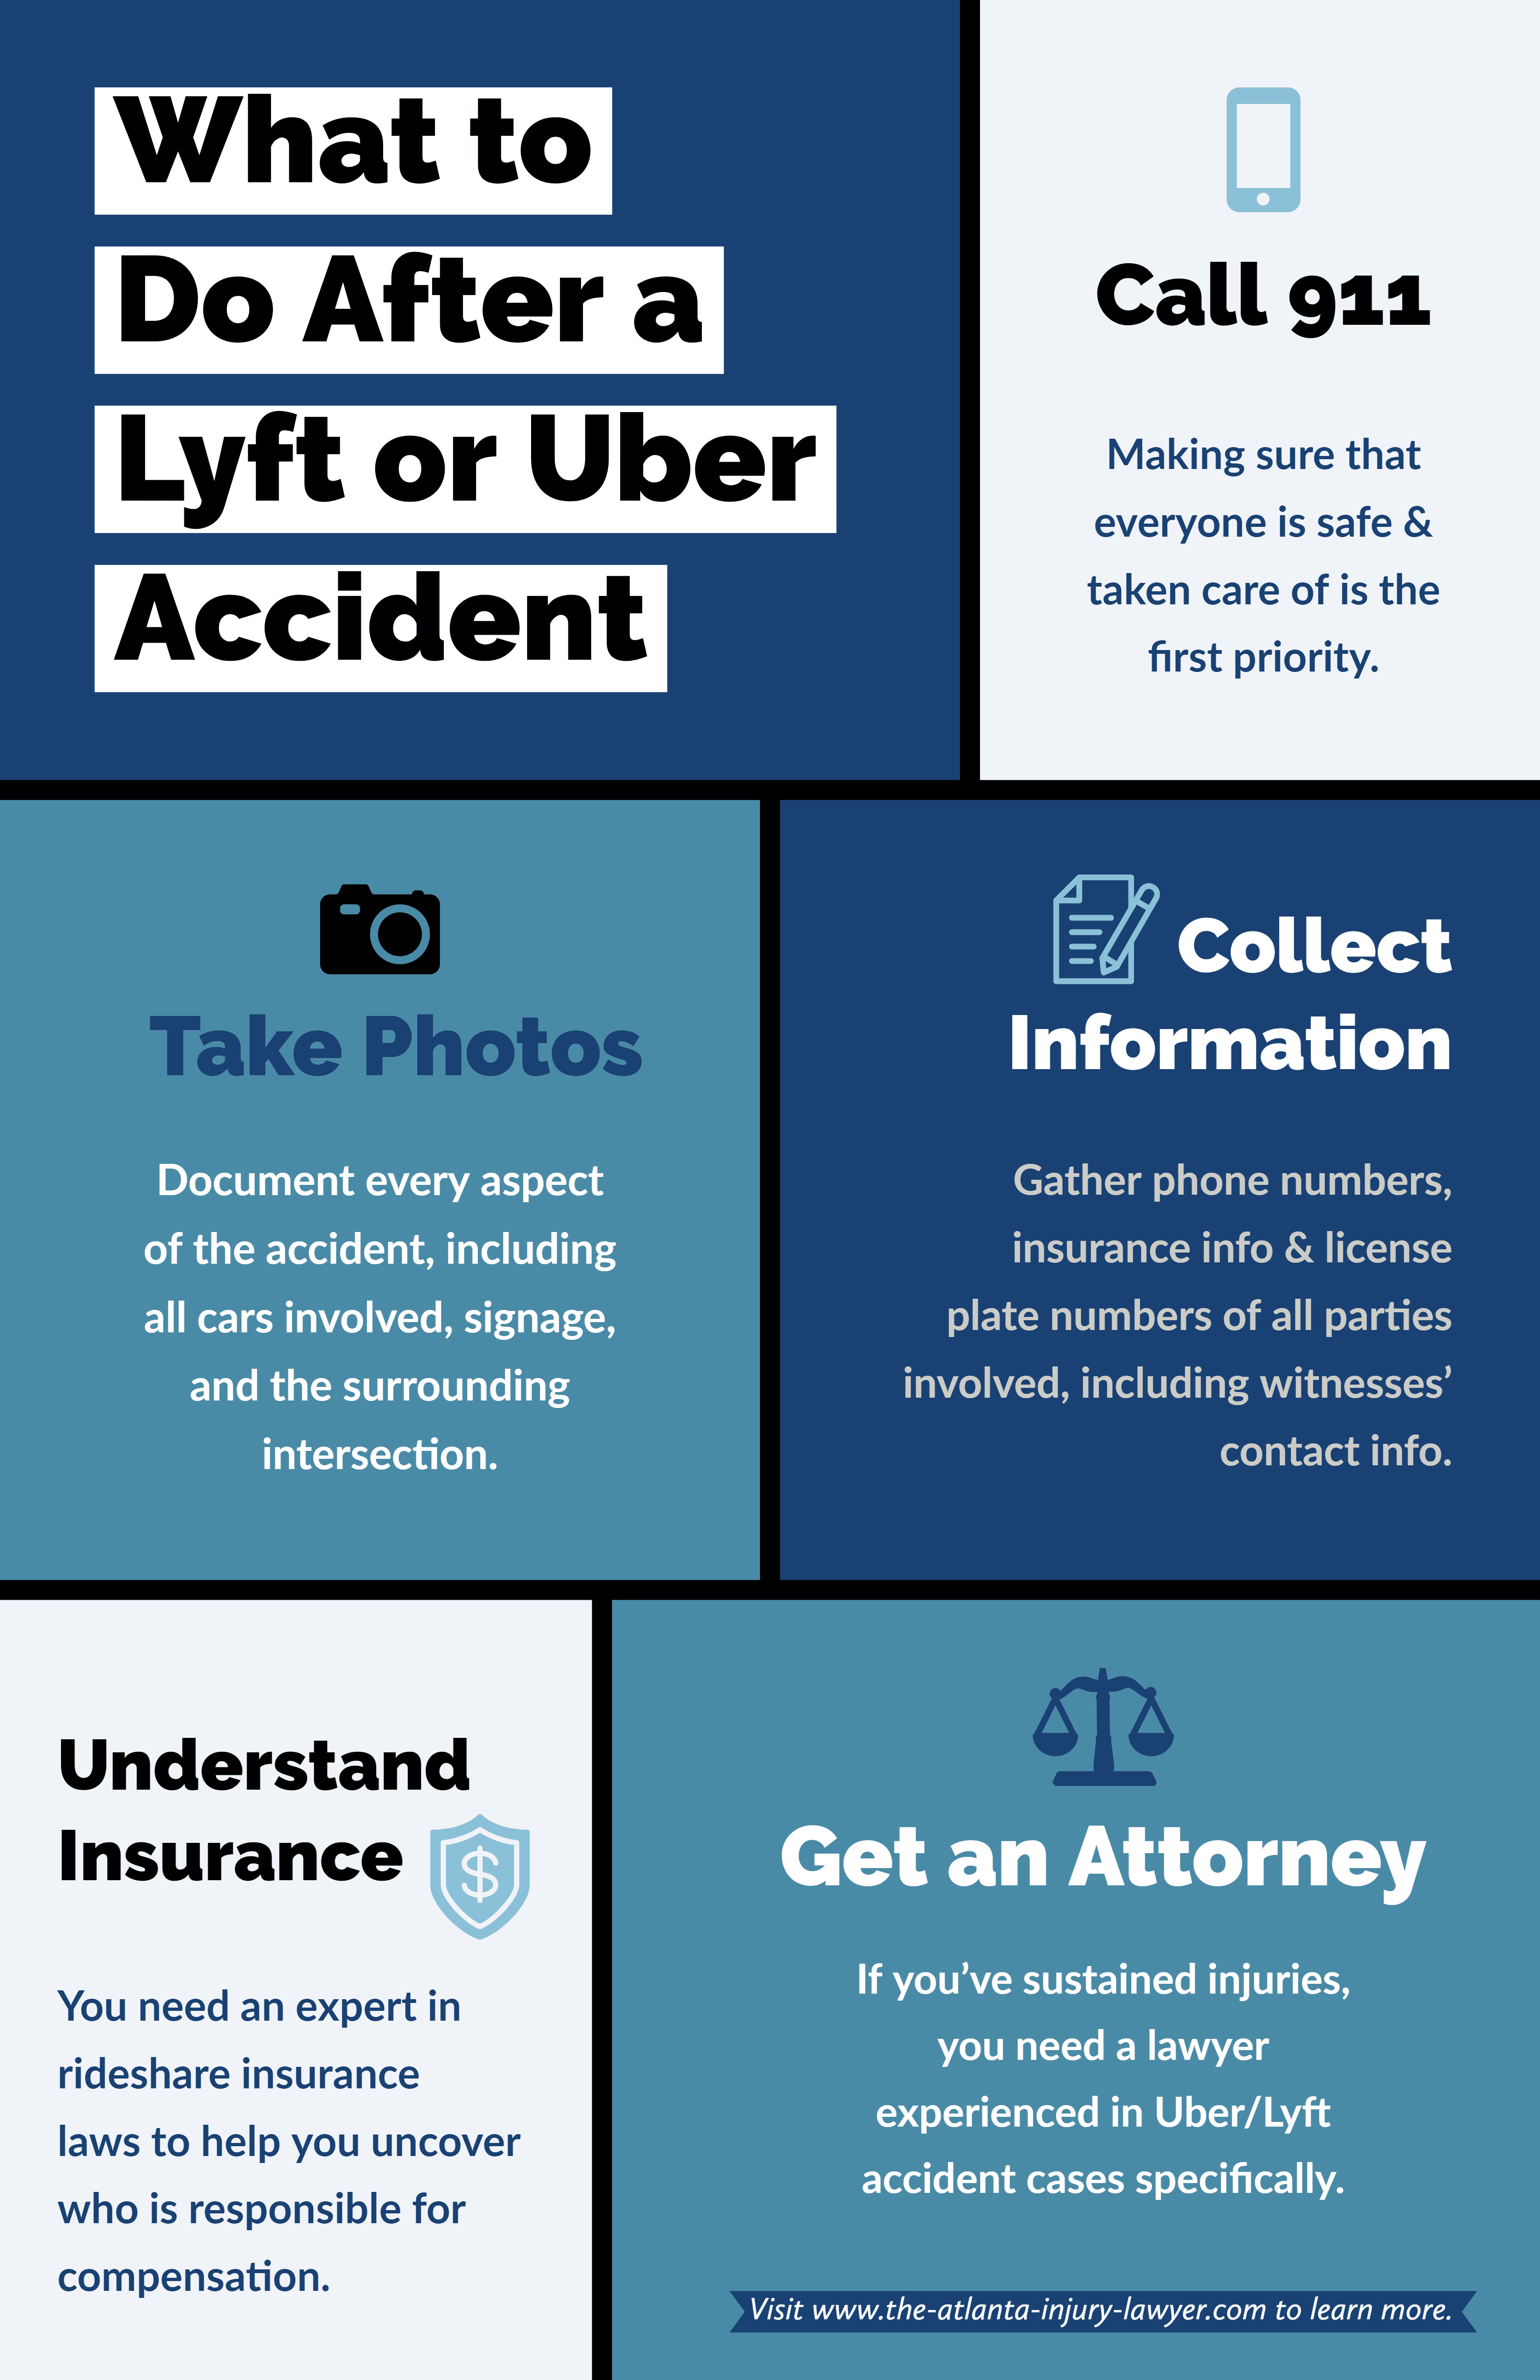 What to Do After a Lyft or Uber Accident